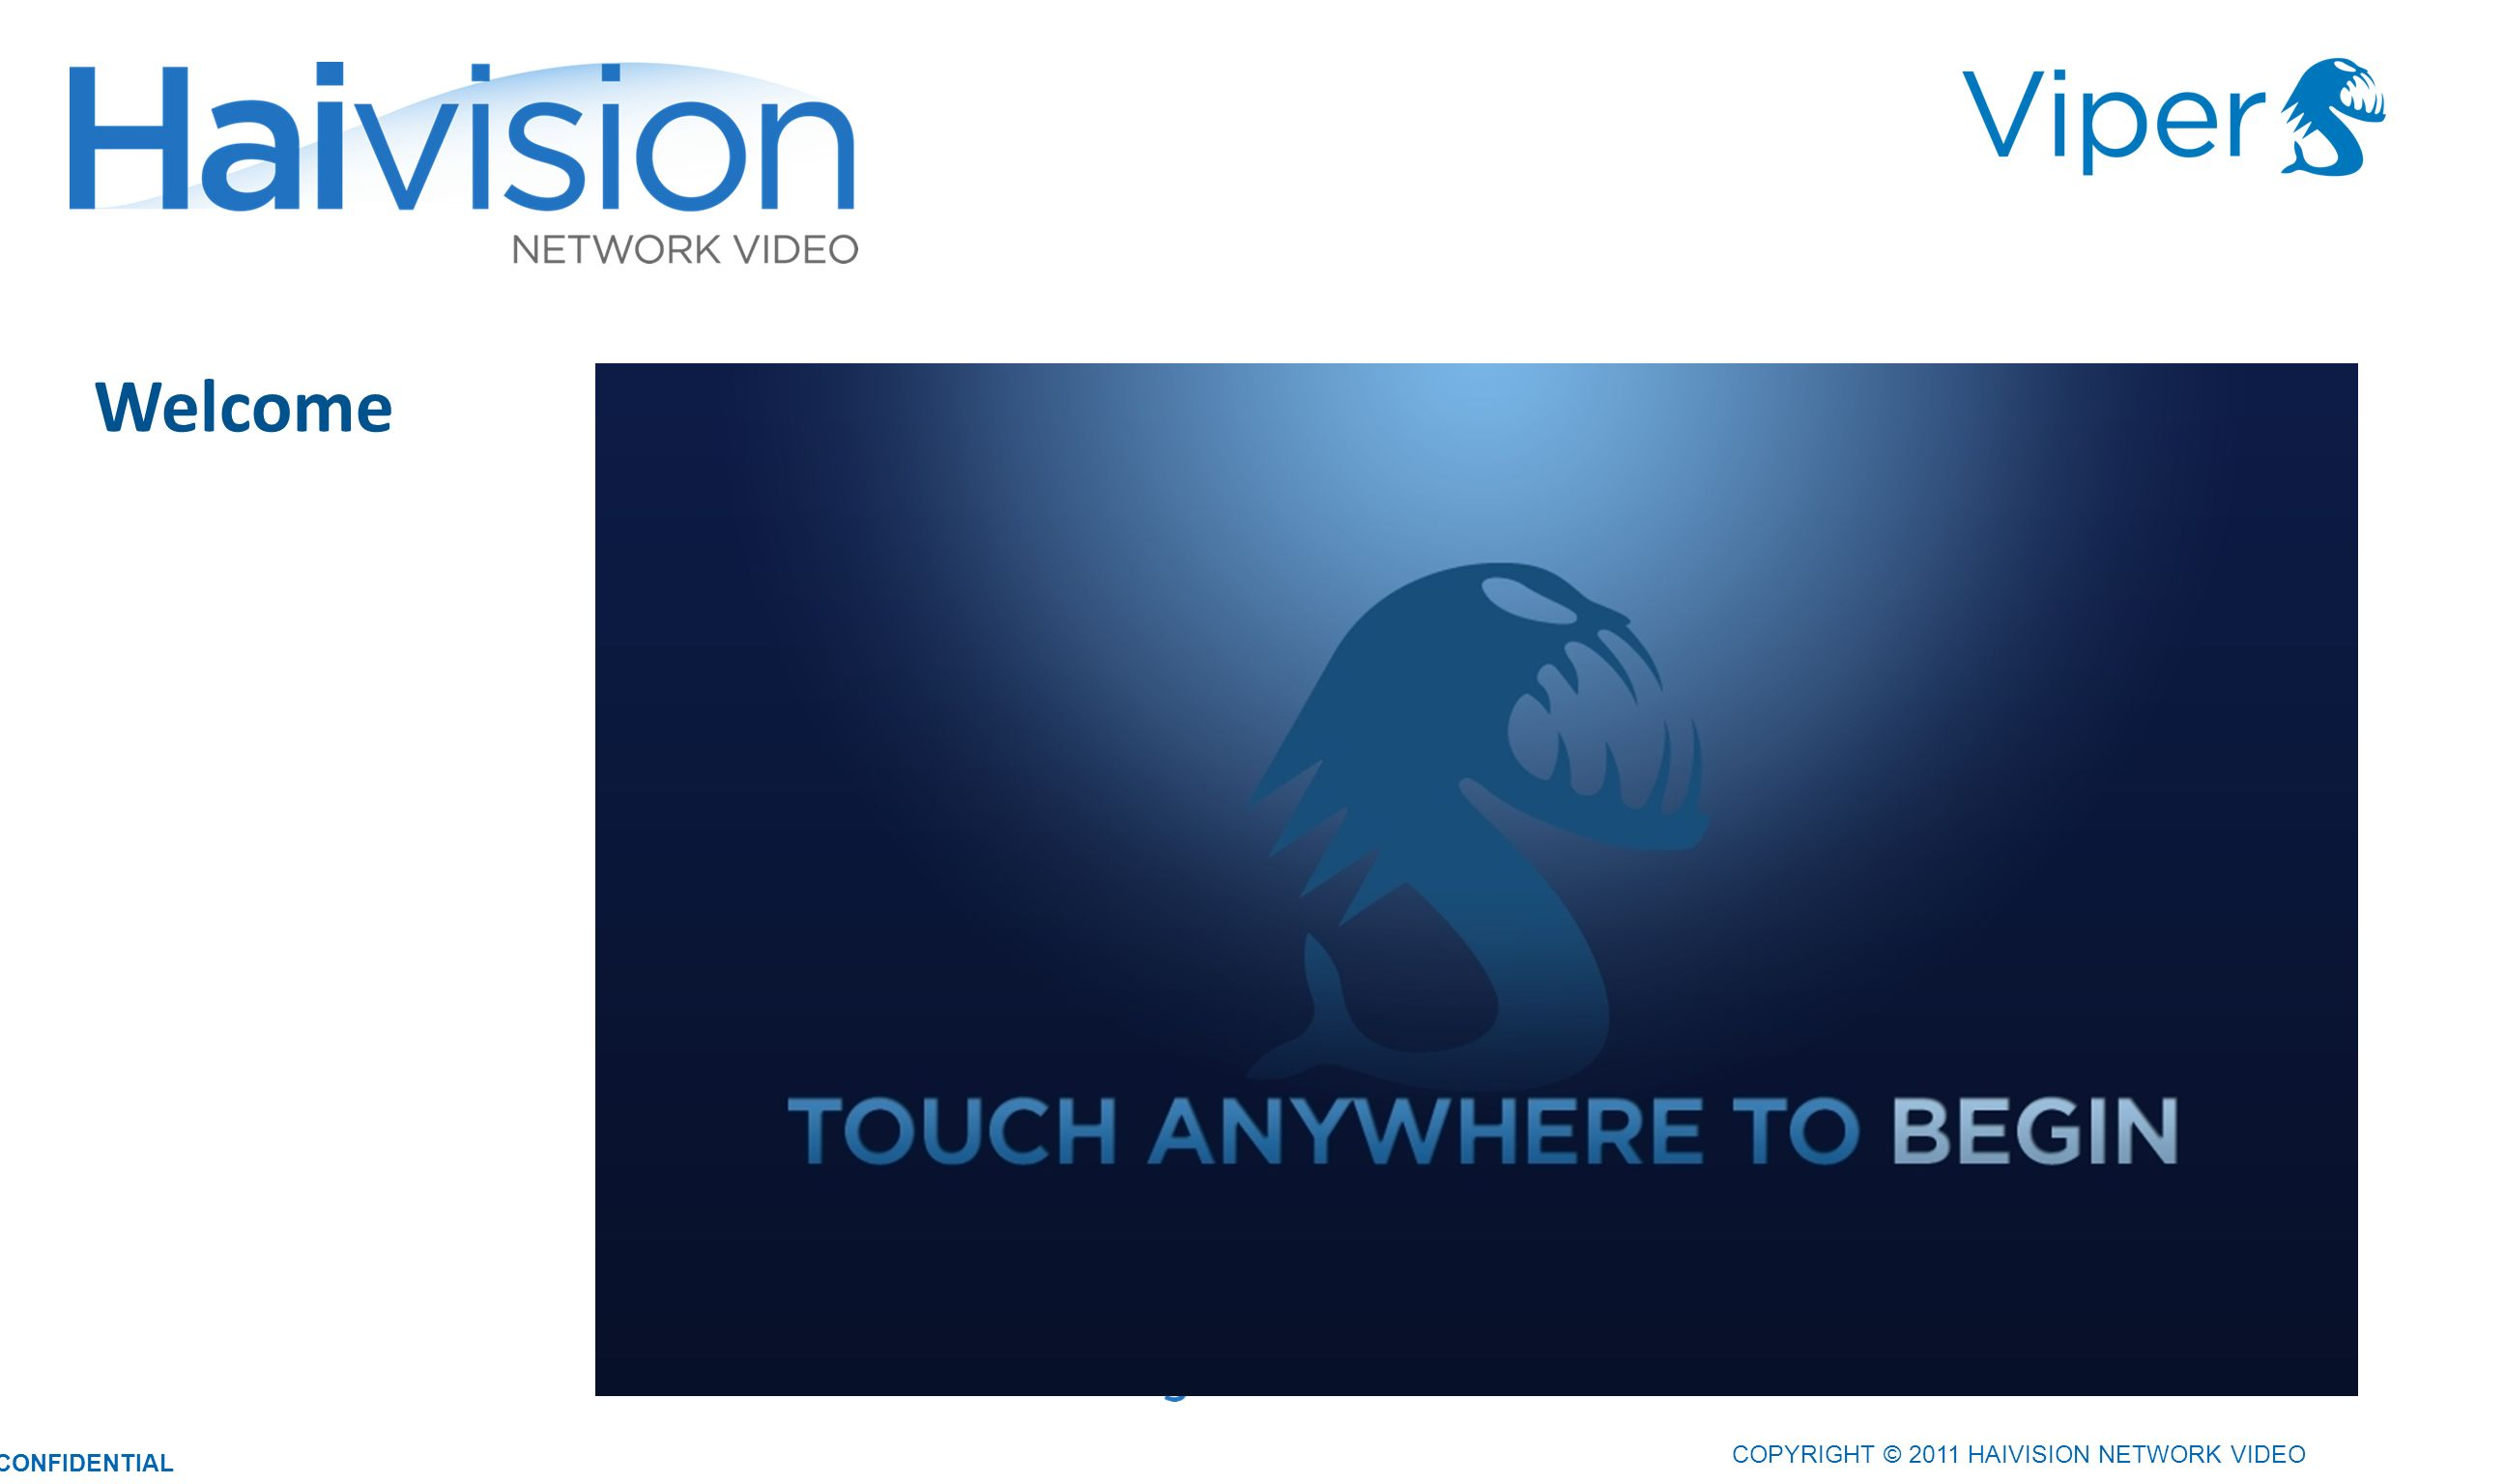 1818 Welcome COPYRIGHT © 2011 HAIVISION NETWORK VIDEO CONFIDENTIAL